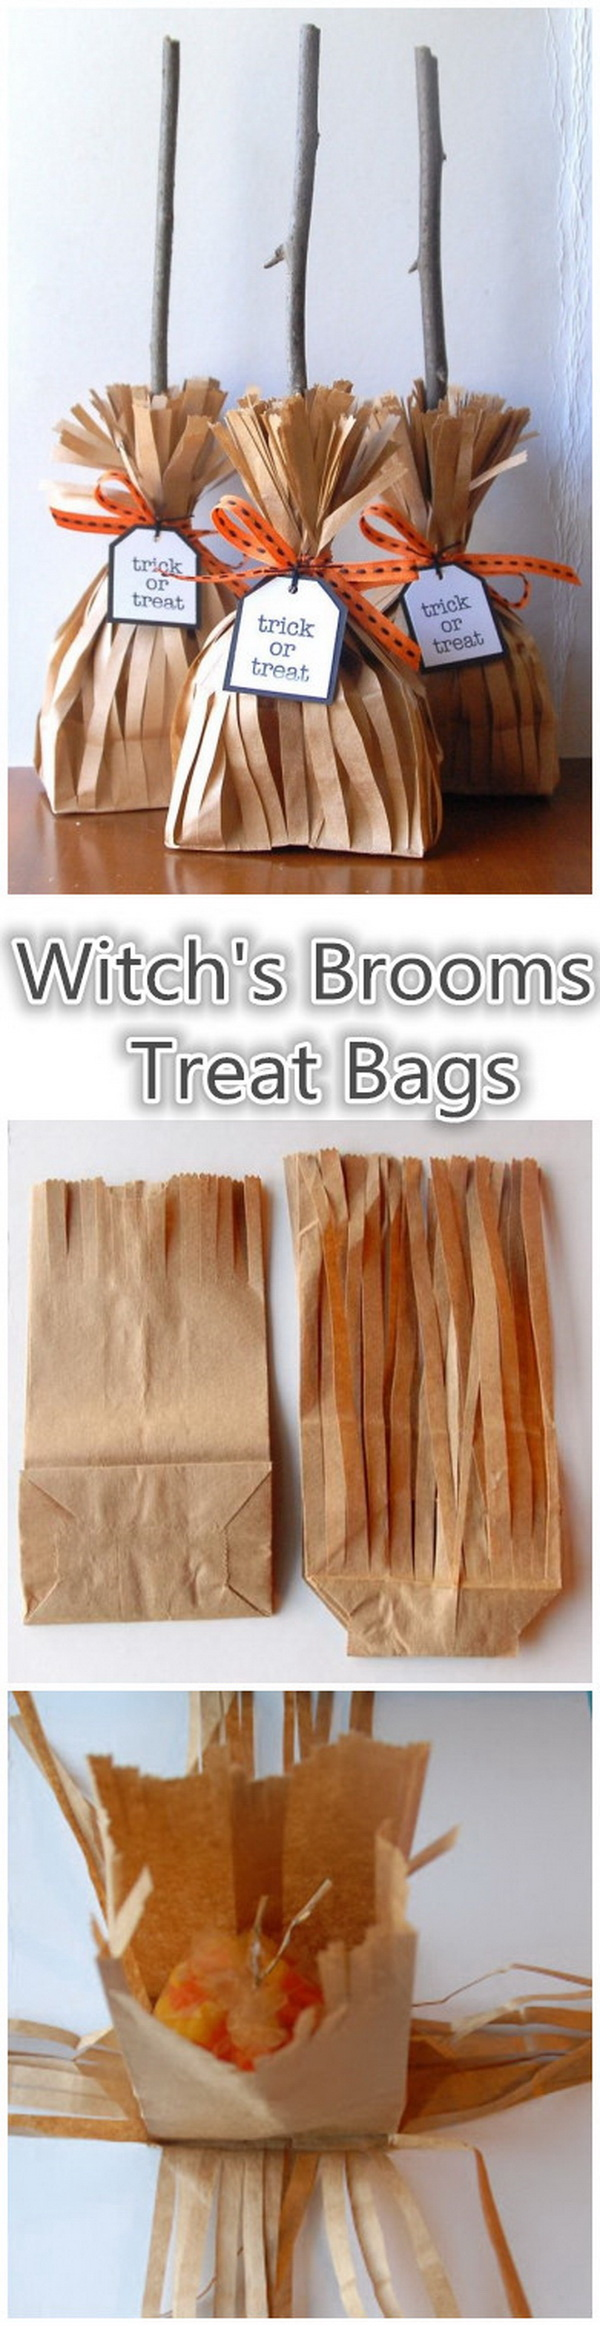 Witch's Brooms Treat Bags. Make these simple and unique gift bags for gifts for Halloween. These are just too cute!